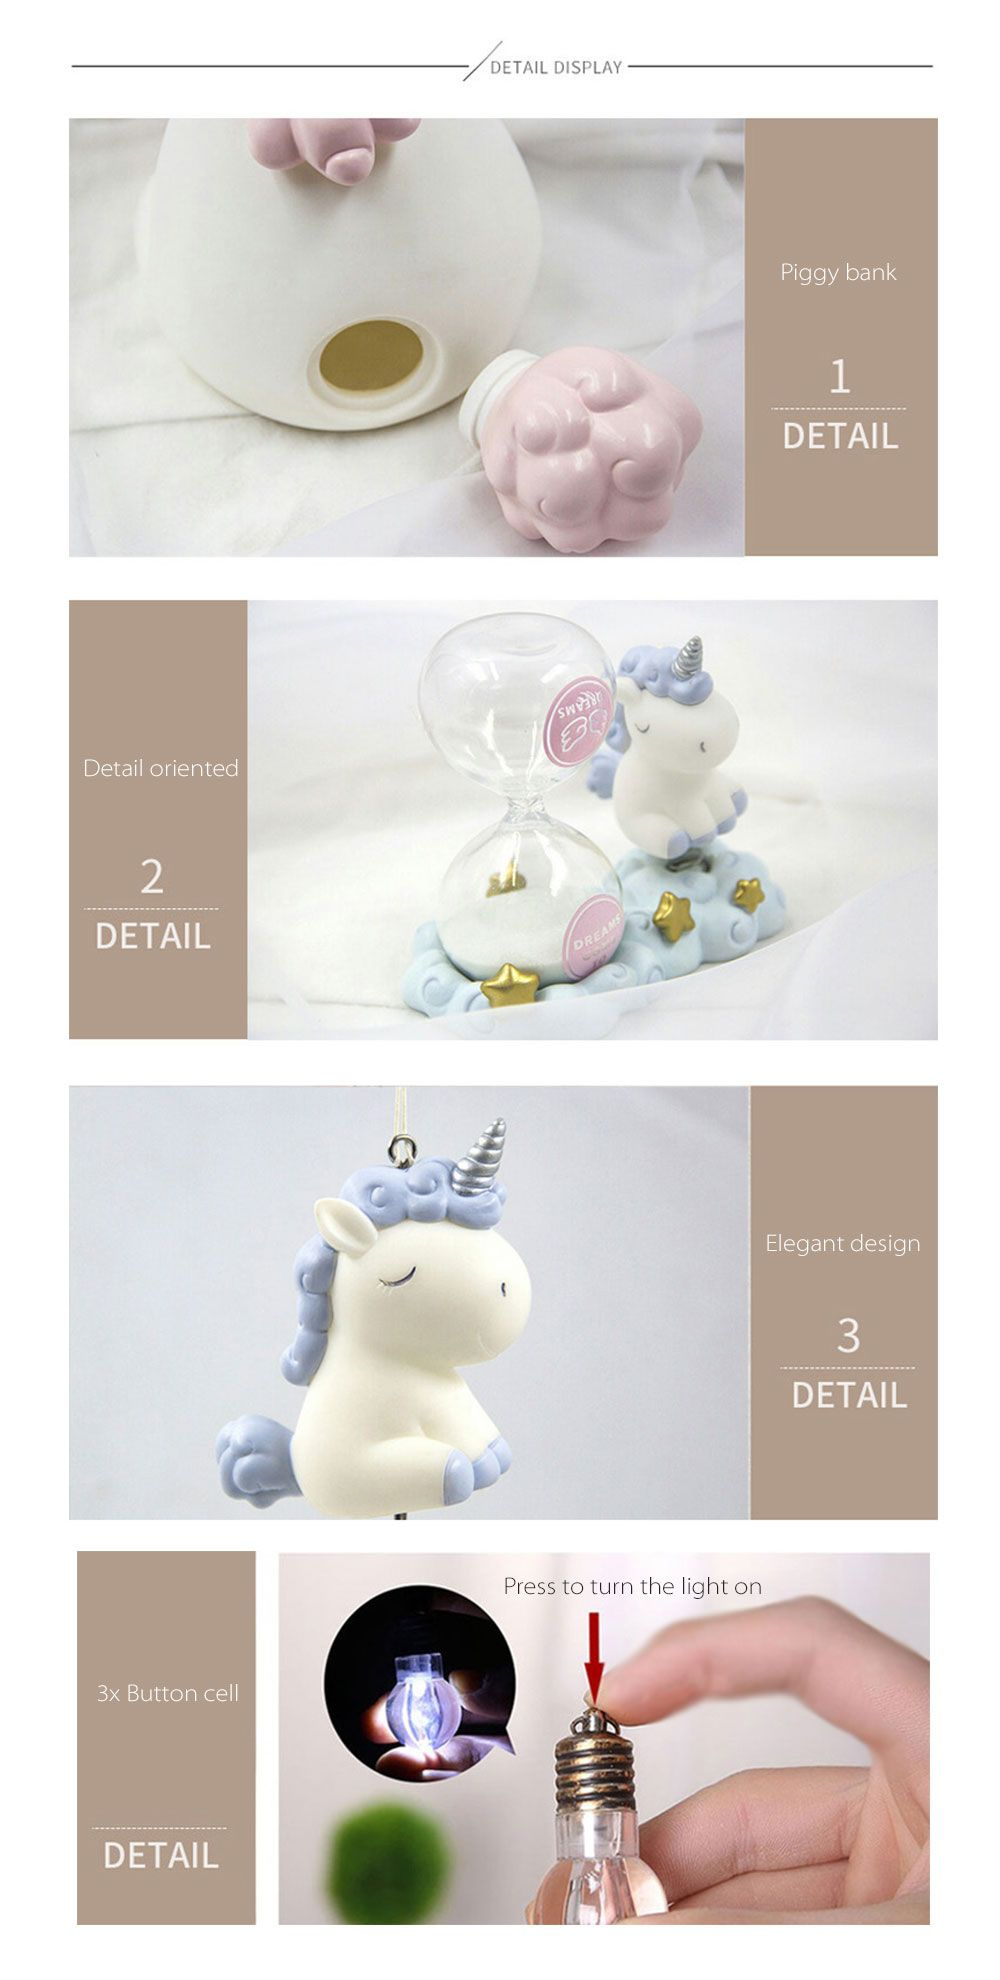 Unicorn Table Ornament A Touch of Magic